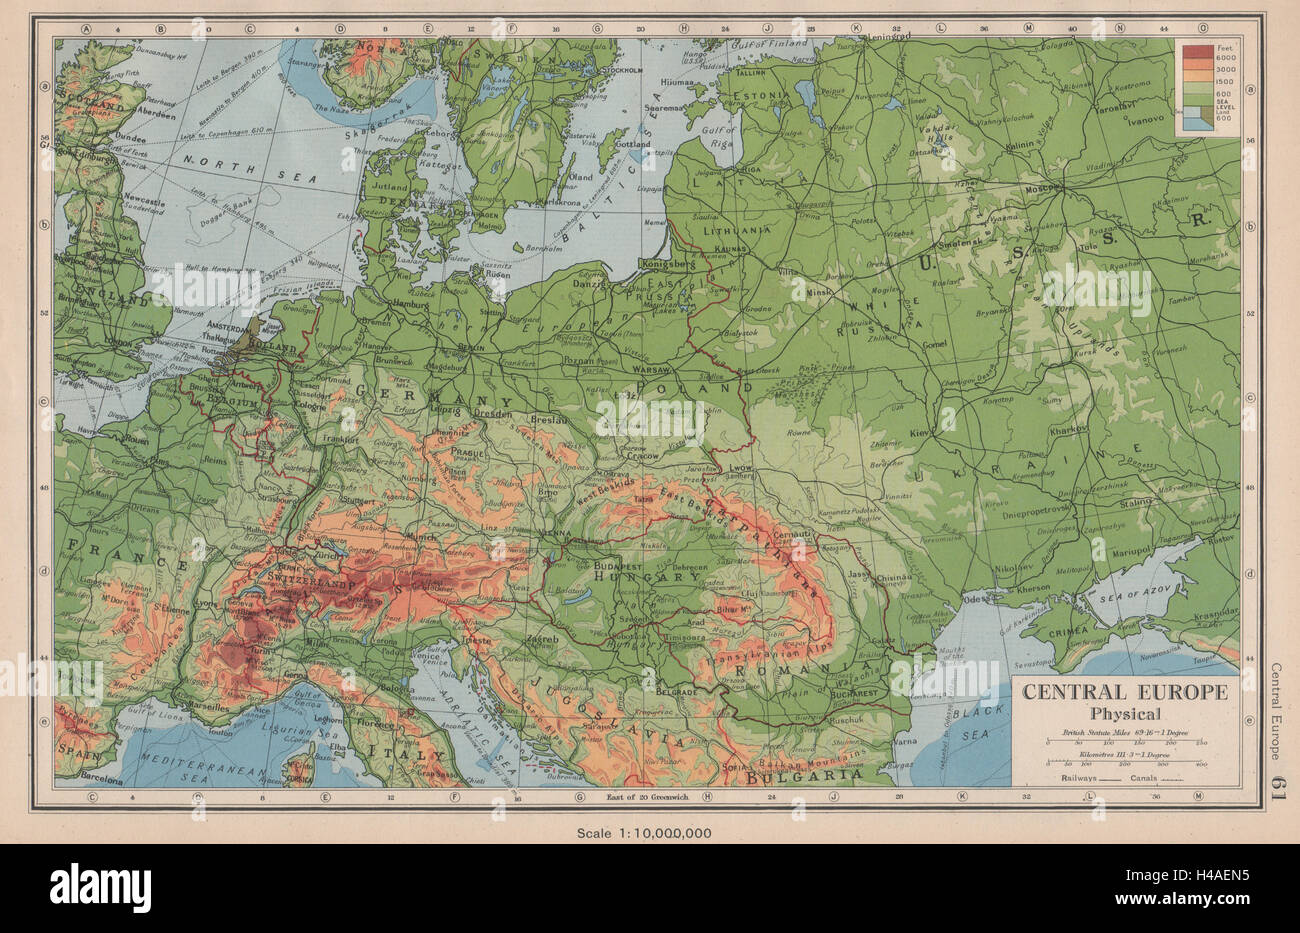 Central Europe Physical Shows Third Reich Enlarged Hungary 1944